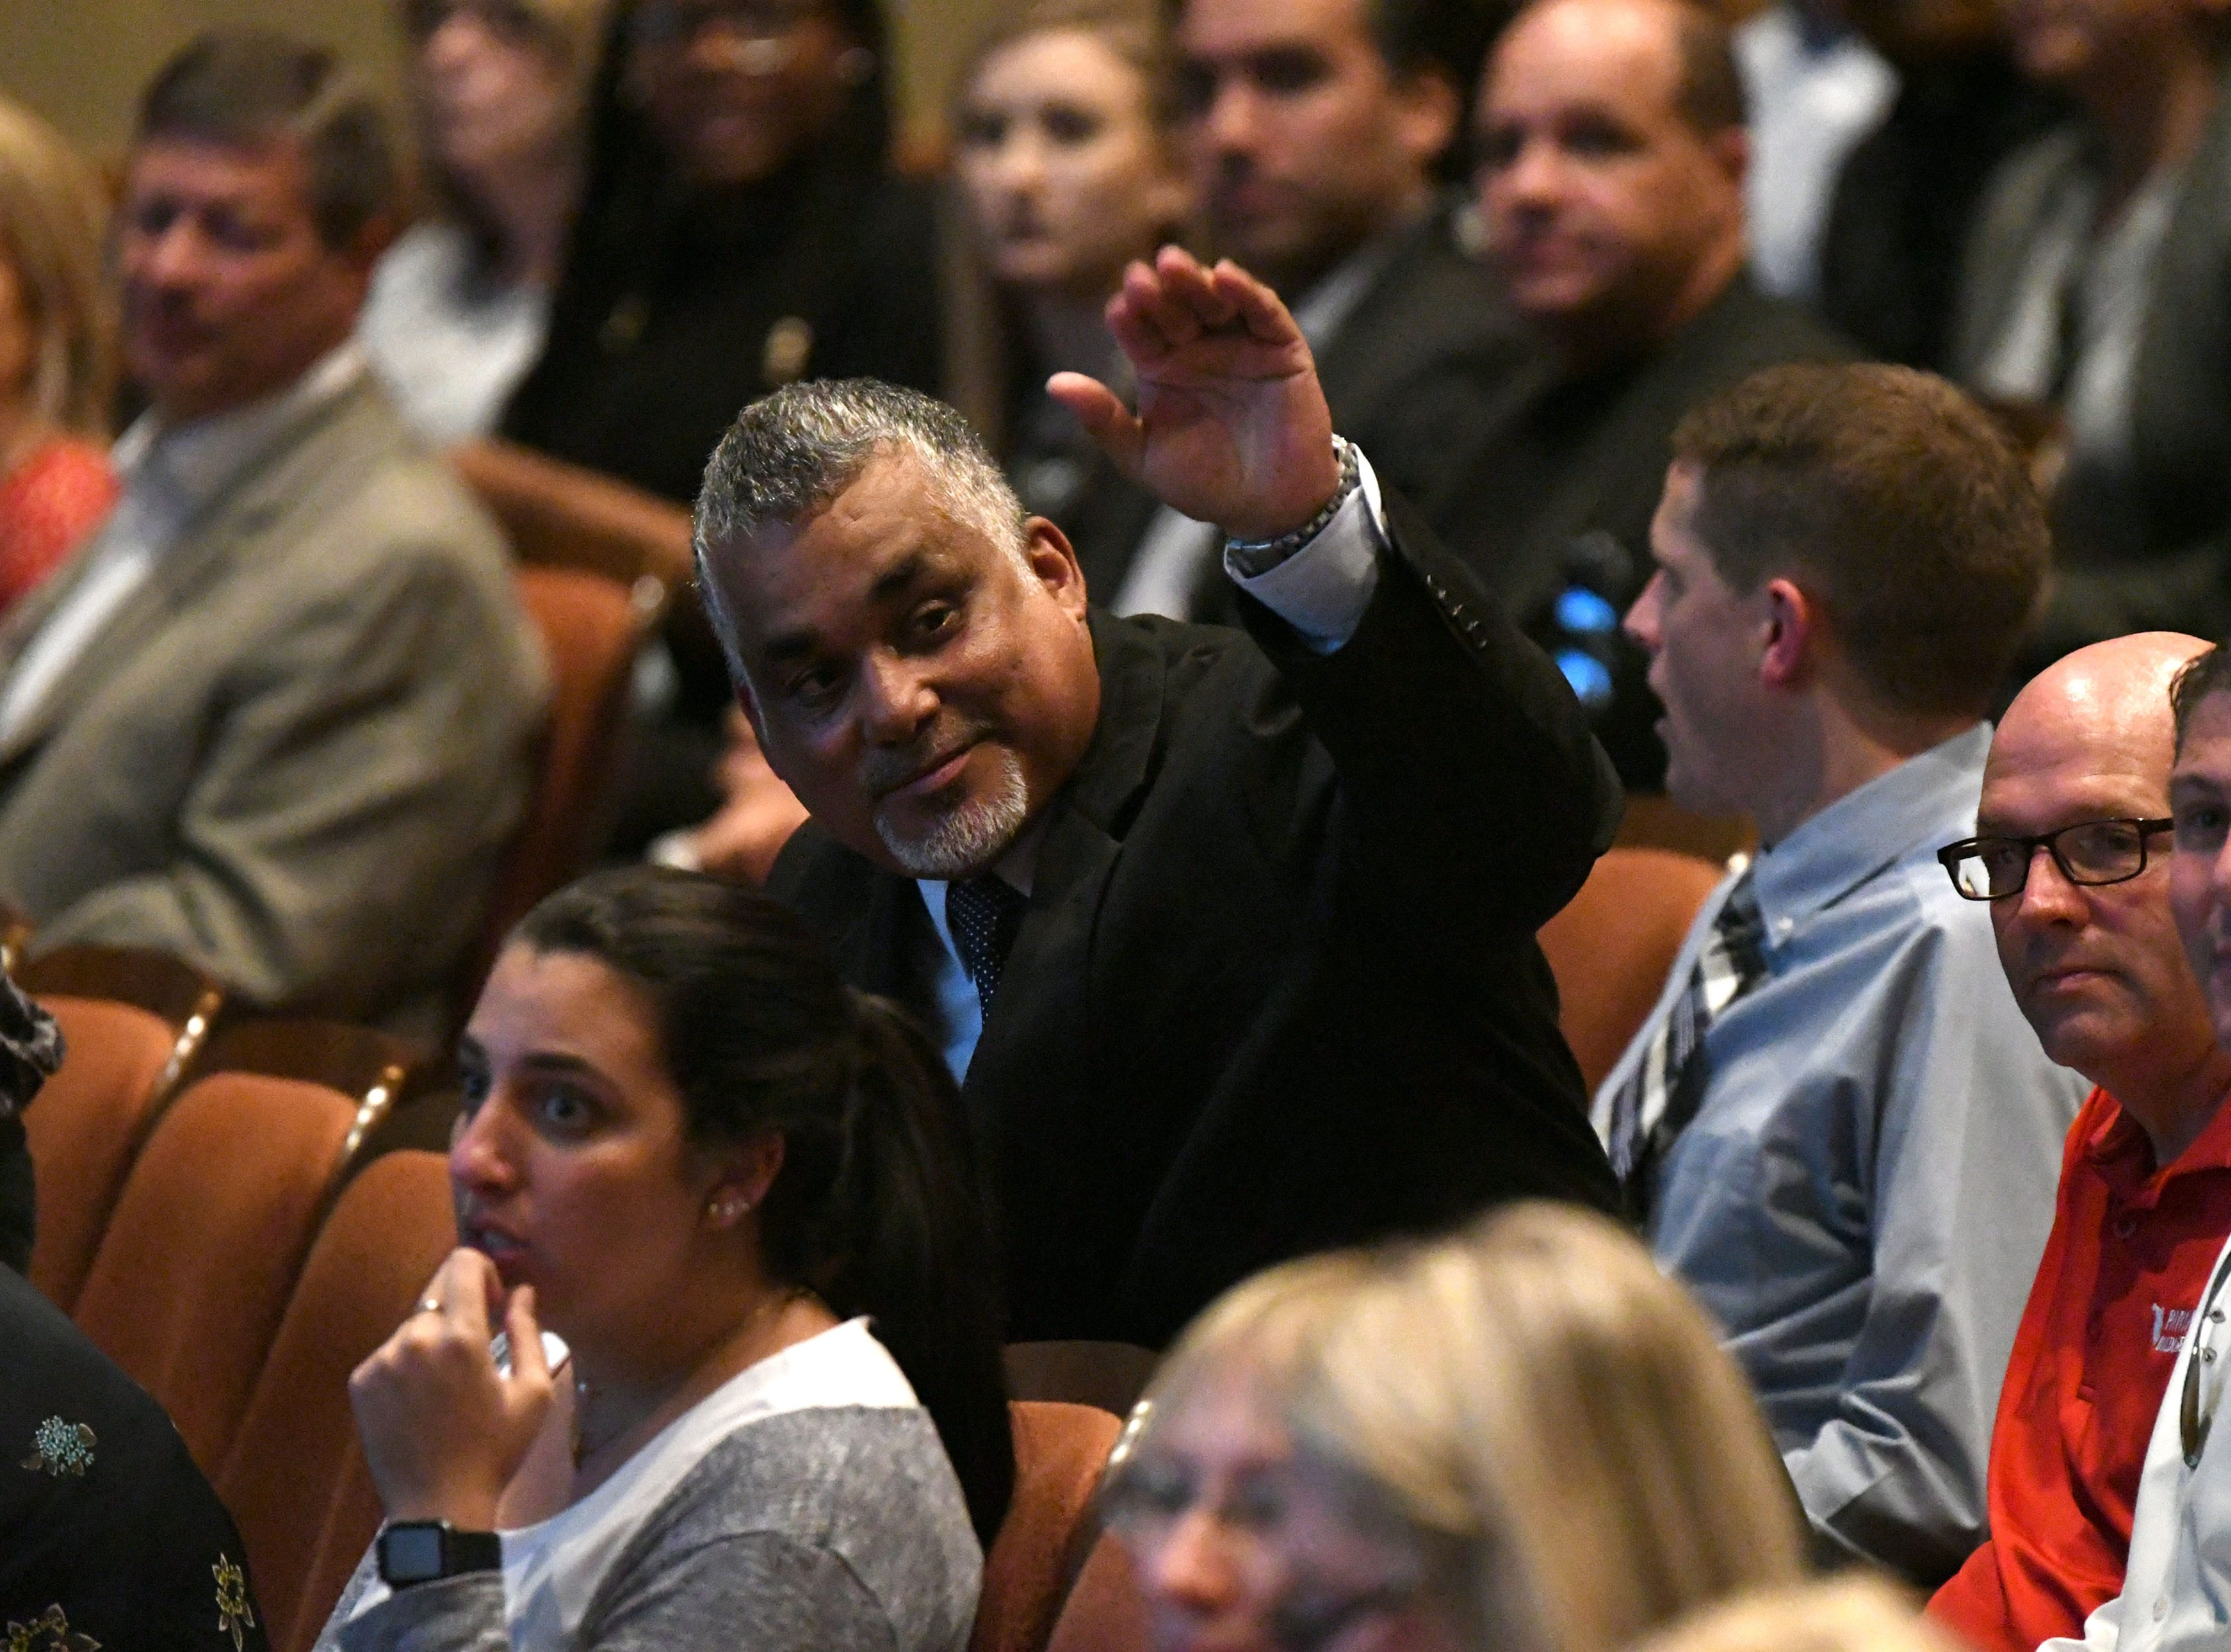 A gentleman waves to a friend in the crowd of the Power Forward business event held in the Ruby Diamond Hall, Wednesday Feb. 6, 2019. Shark Tank co-star and serial entrepreneur Kevin O'Leary was the featured speaker at the event.